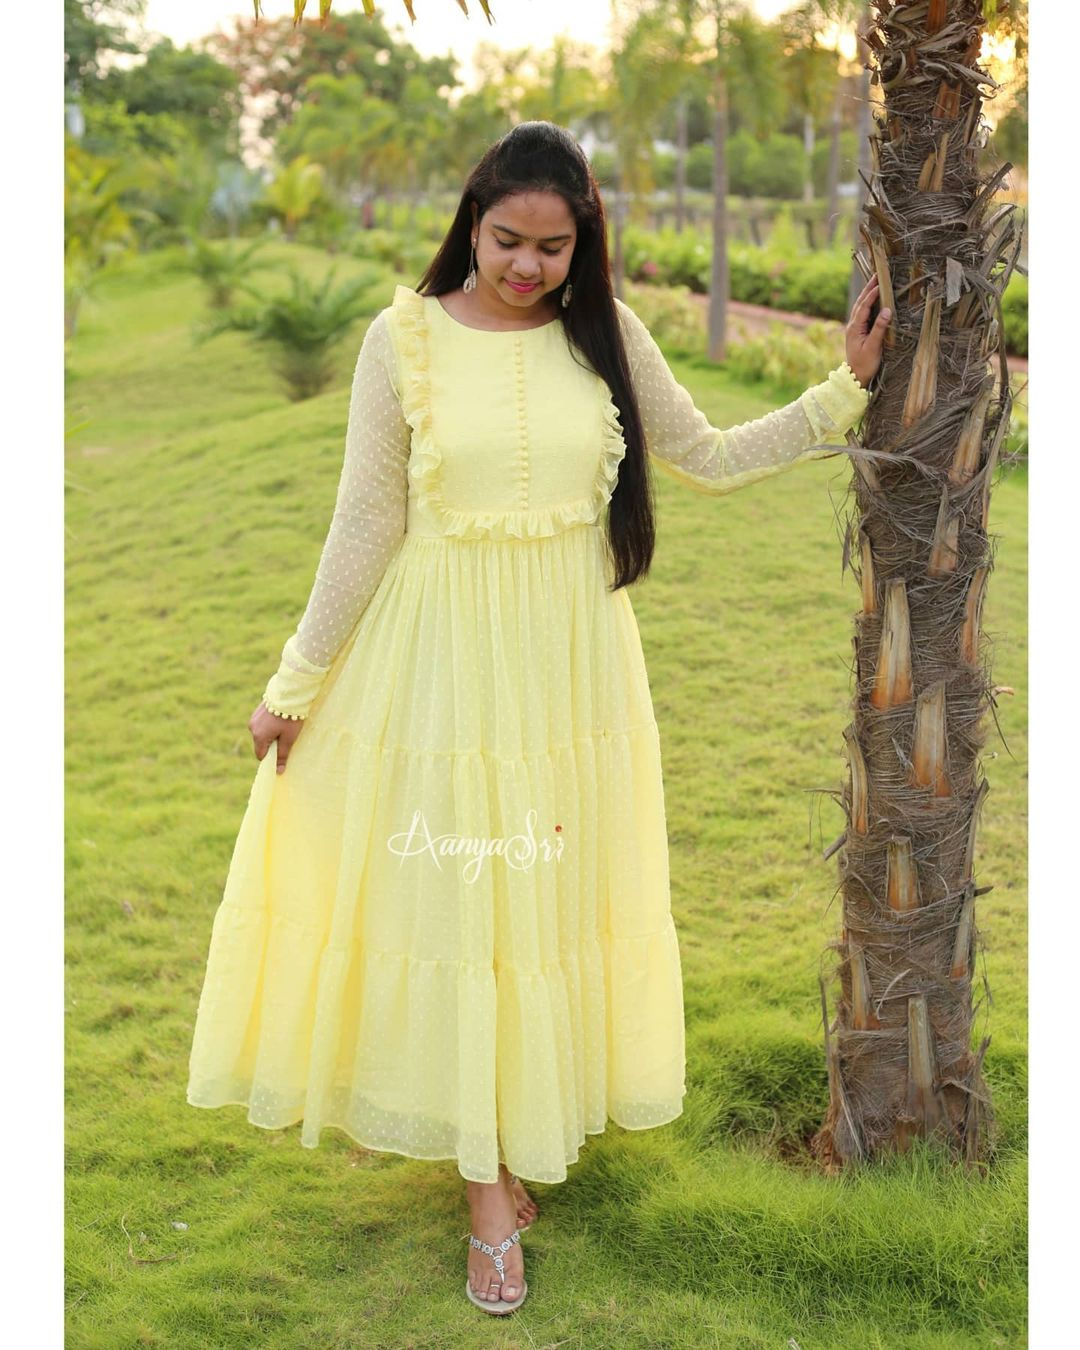 Pastel yellow layered ankle length frock with ruffle & potlis detailing on the yoke . Comes with full sleeves and potlis on the sleeves and boat neck. Price :  RS. 2600/- 2021-06-26